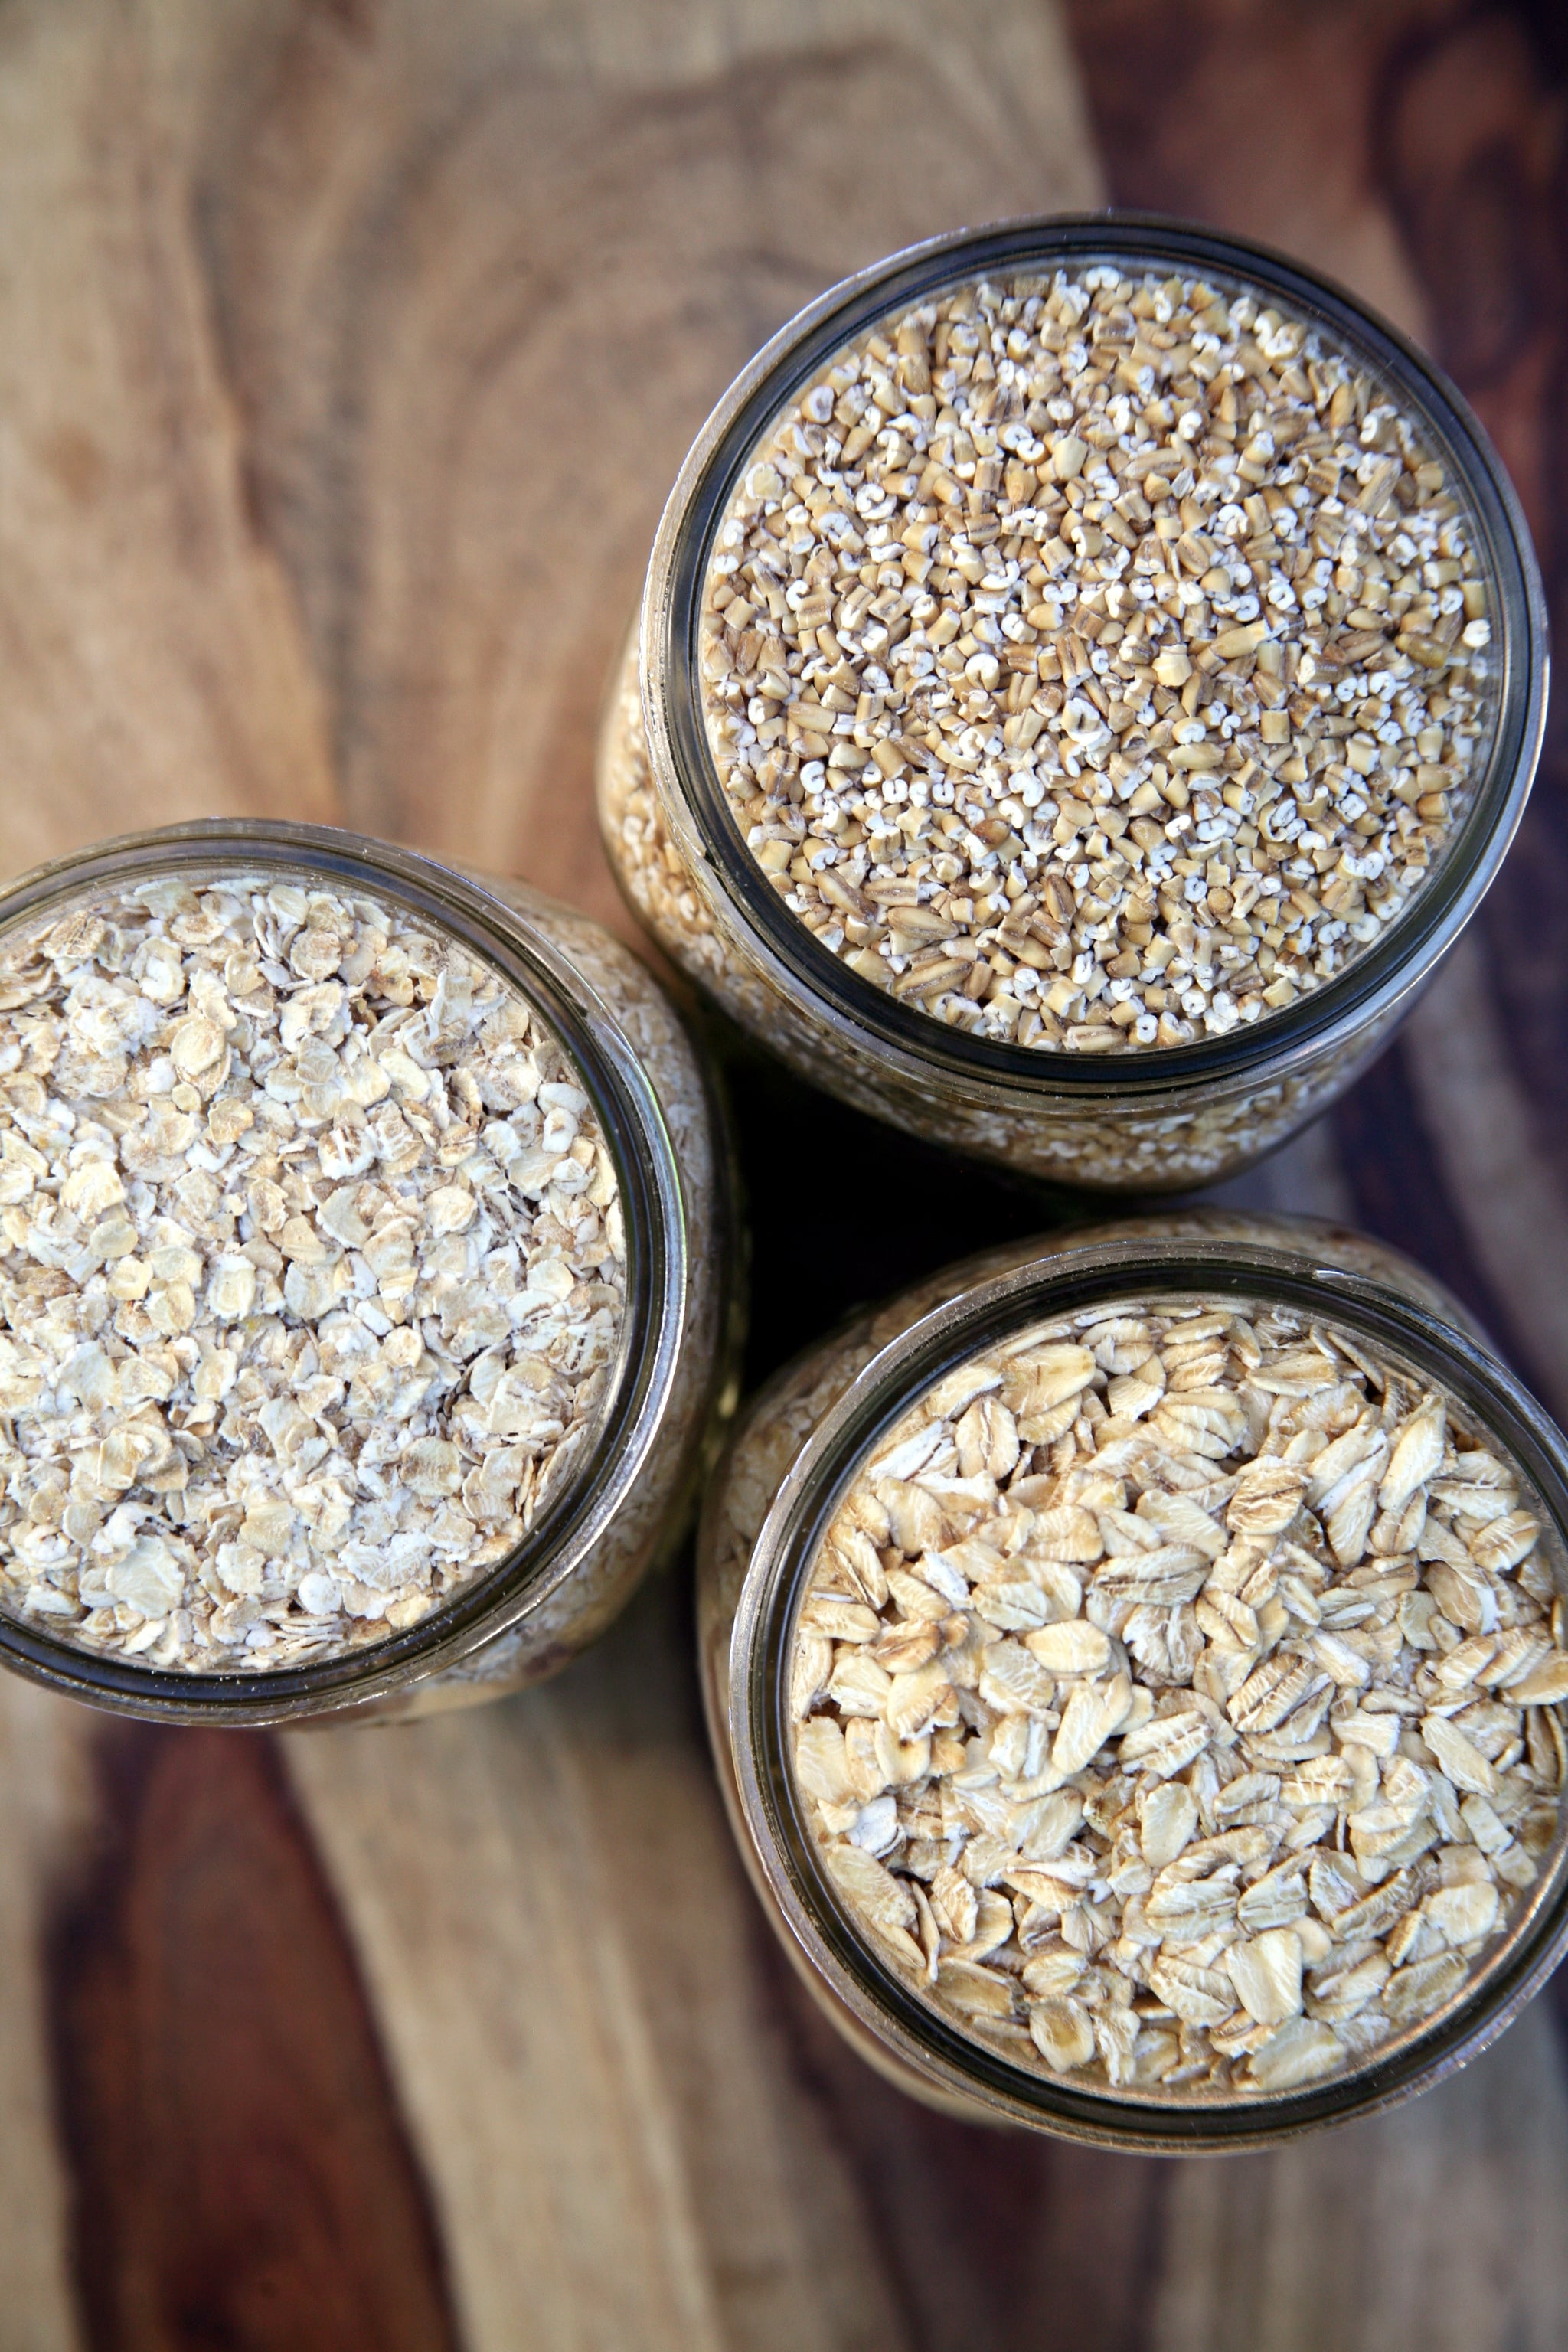 A Comparison Of Steel Cut Oats Old Fashioned Oats And